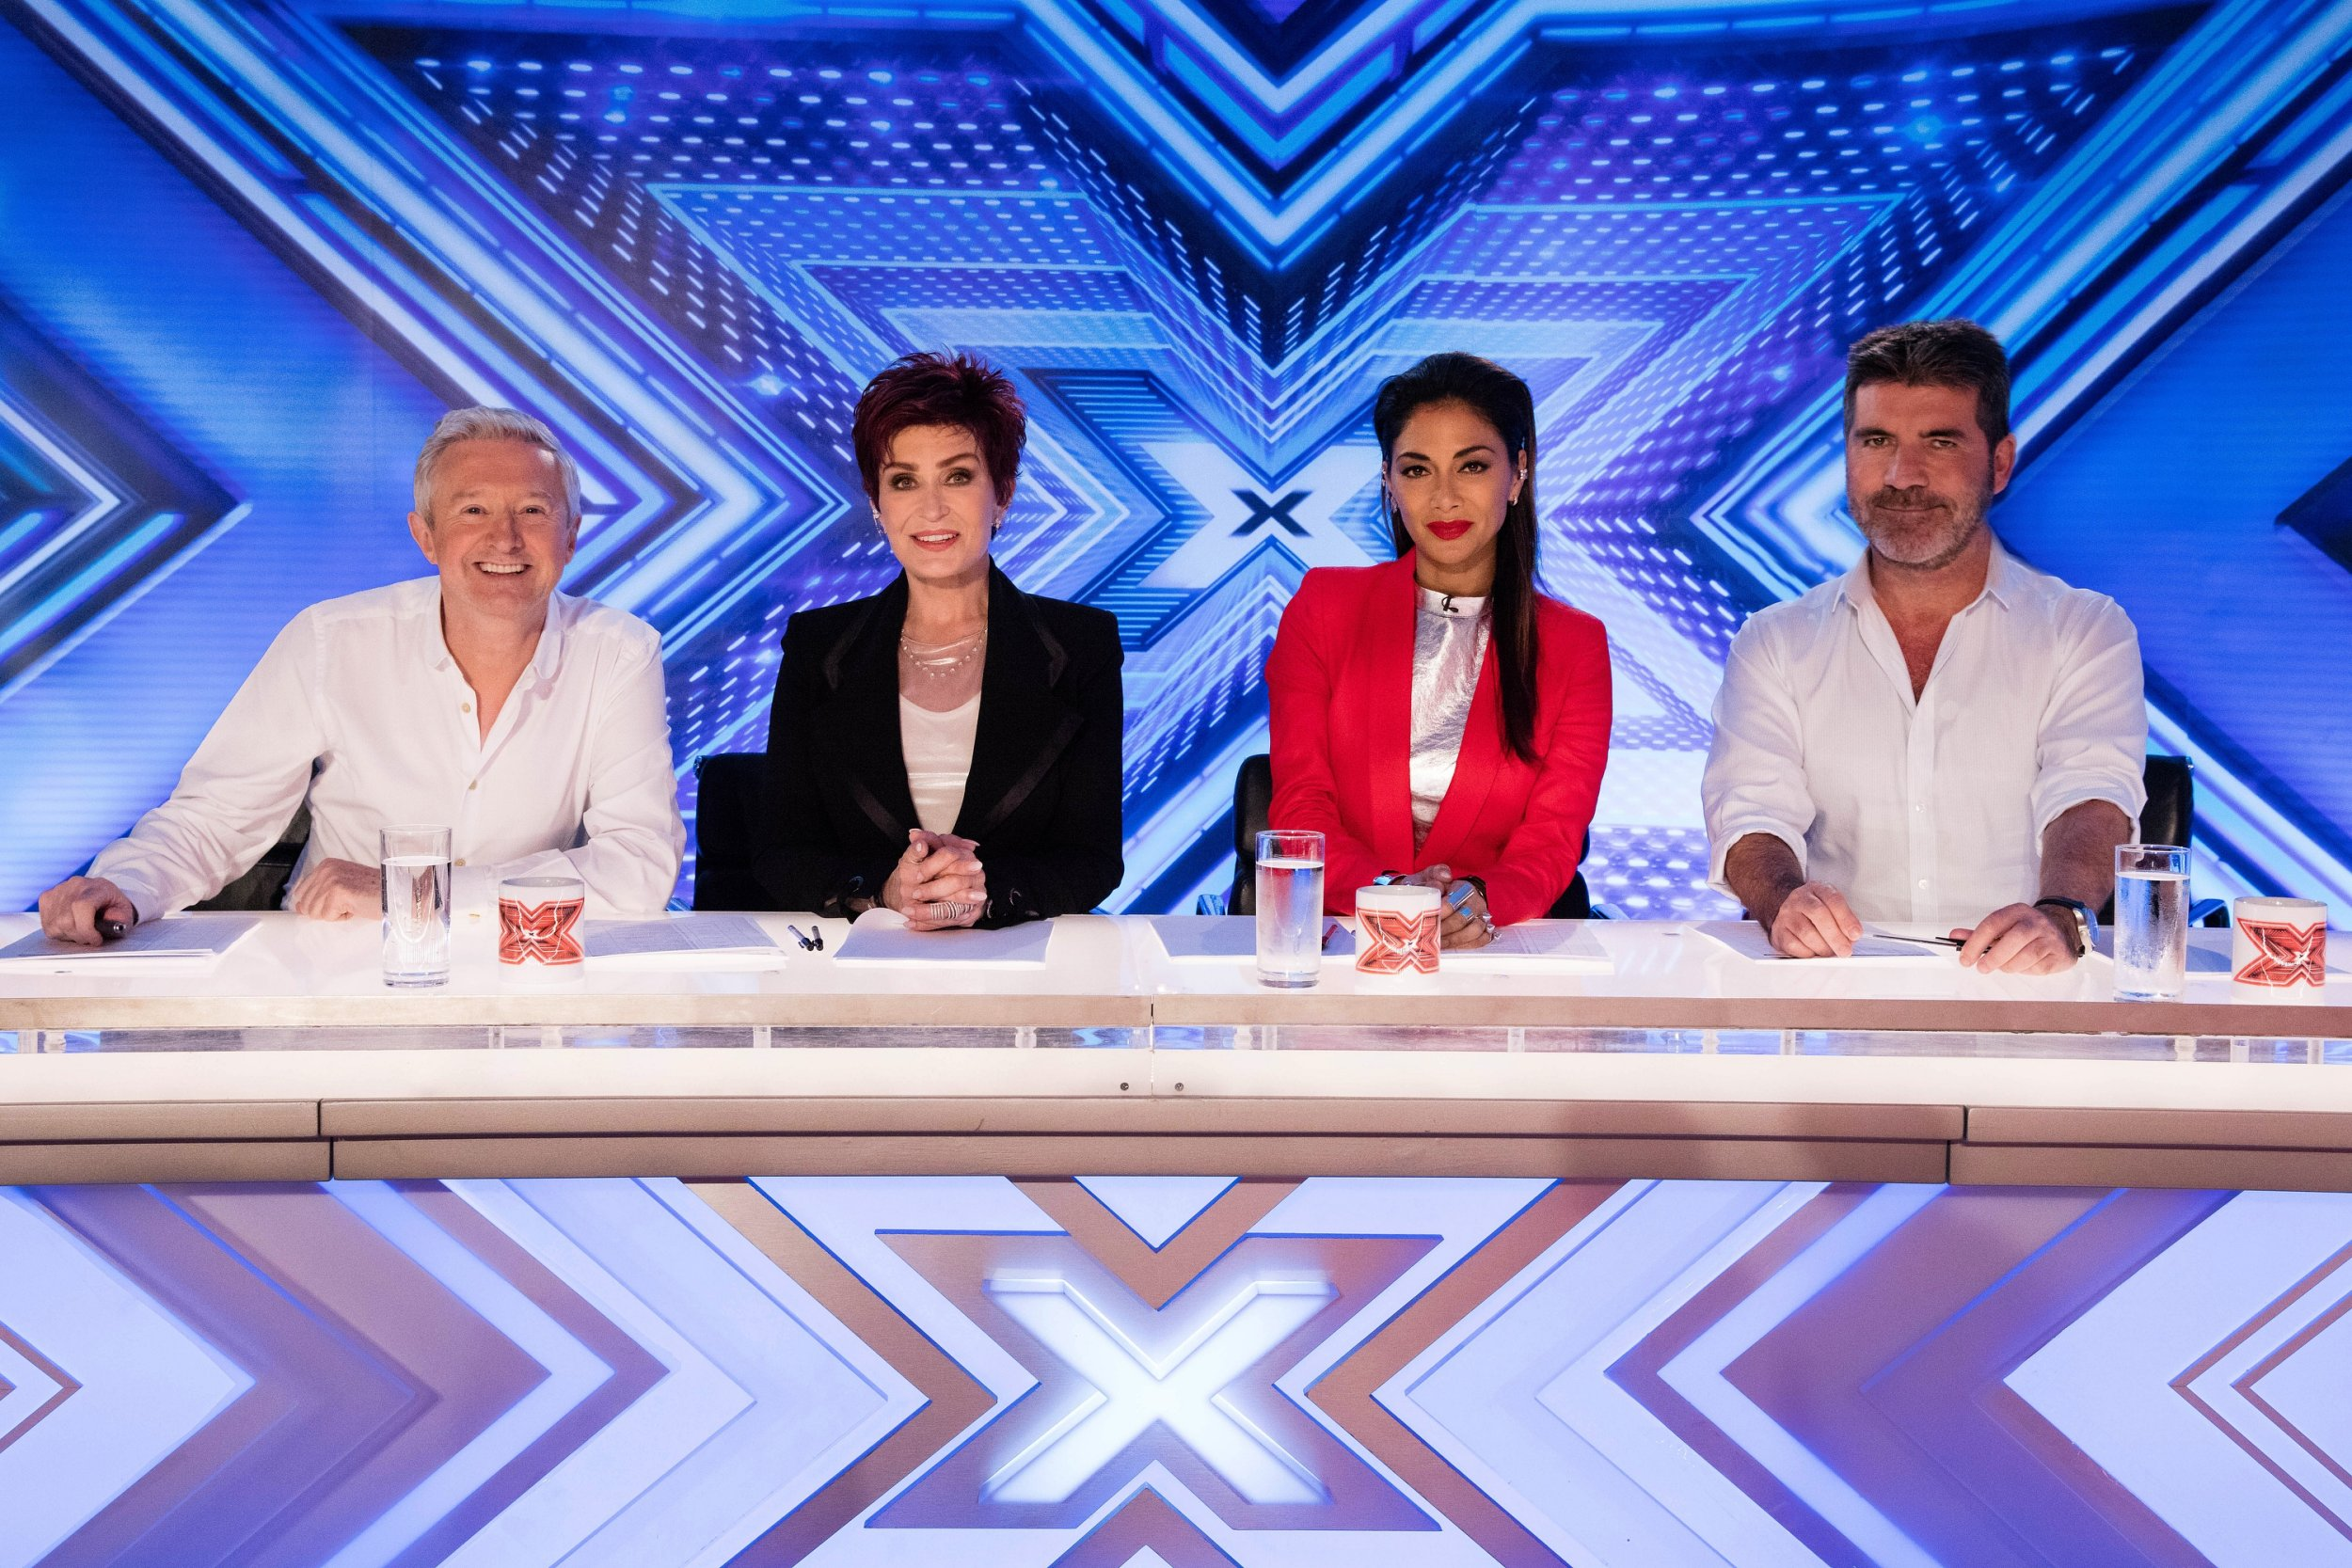 Check out the first picture of the new The X Factor judges together